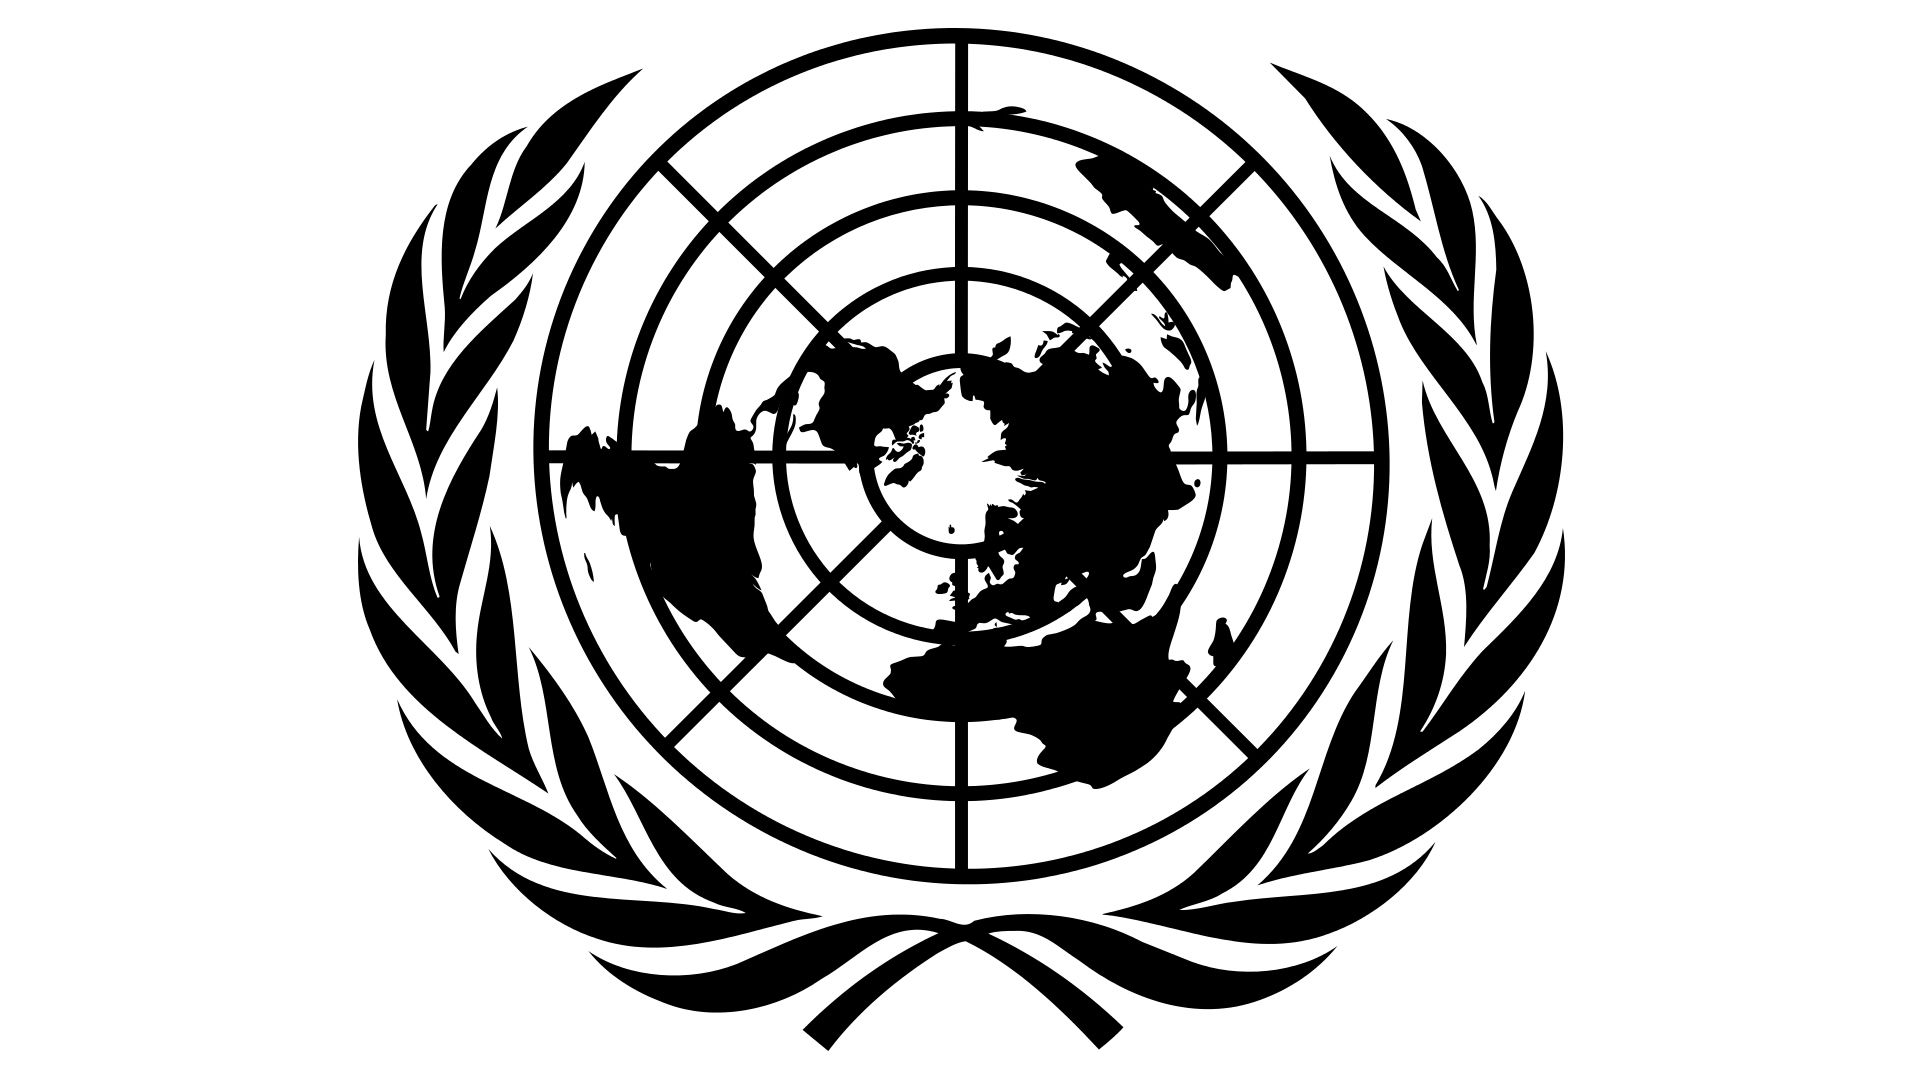 United Nations Logo - United Nations Logo, United Nations Symbol, Meaning, History and ...